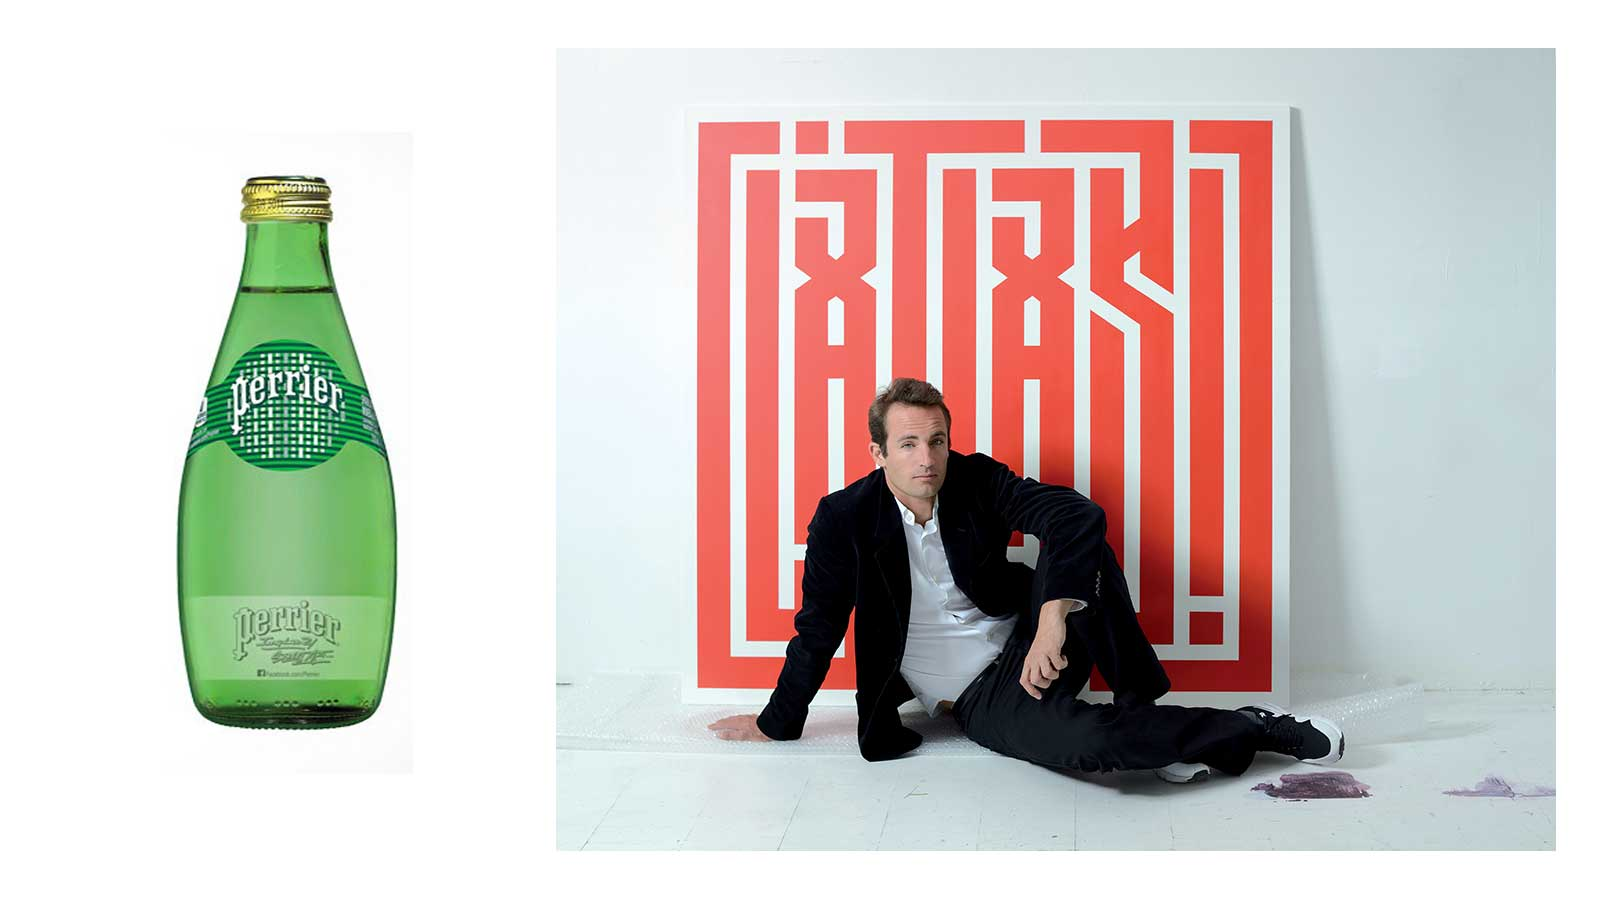 2015 Limited Edition Perrier Inspired by Street Art